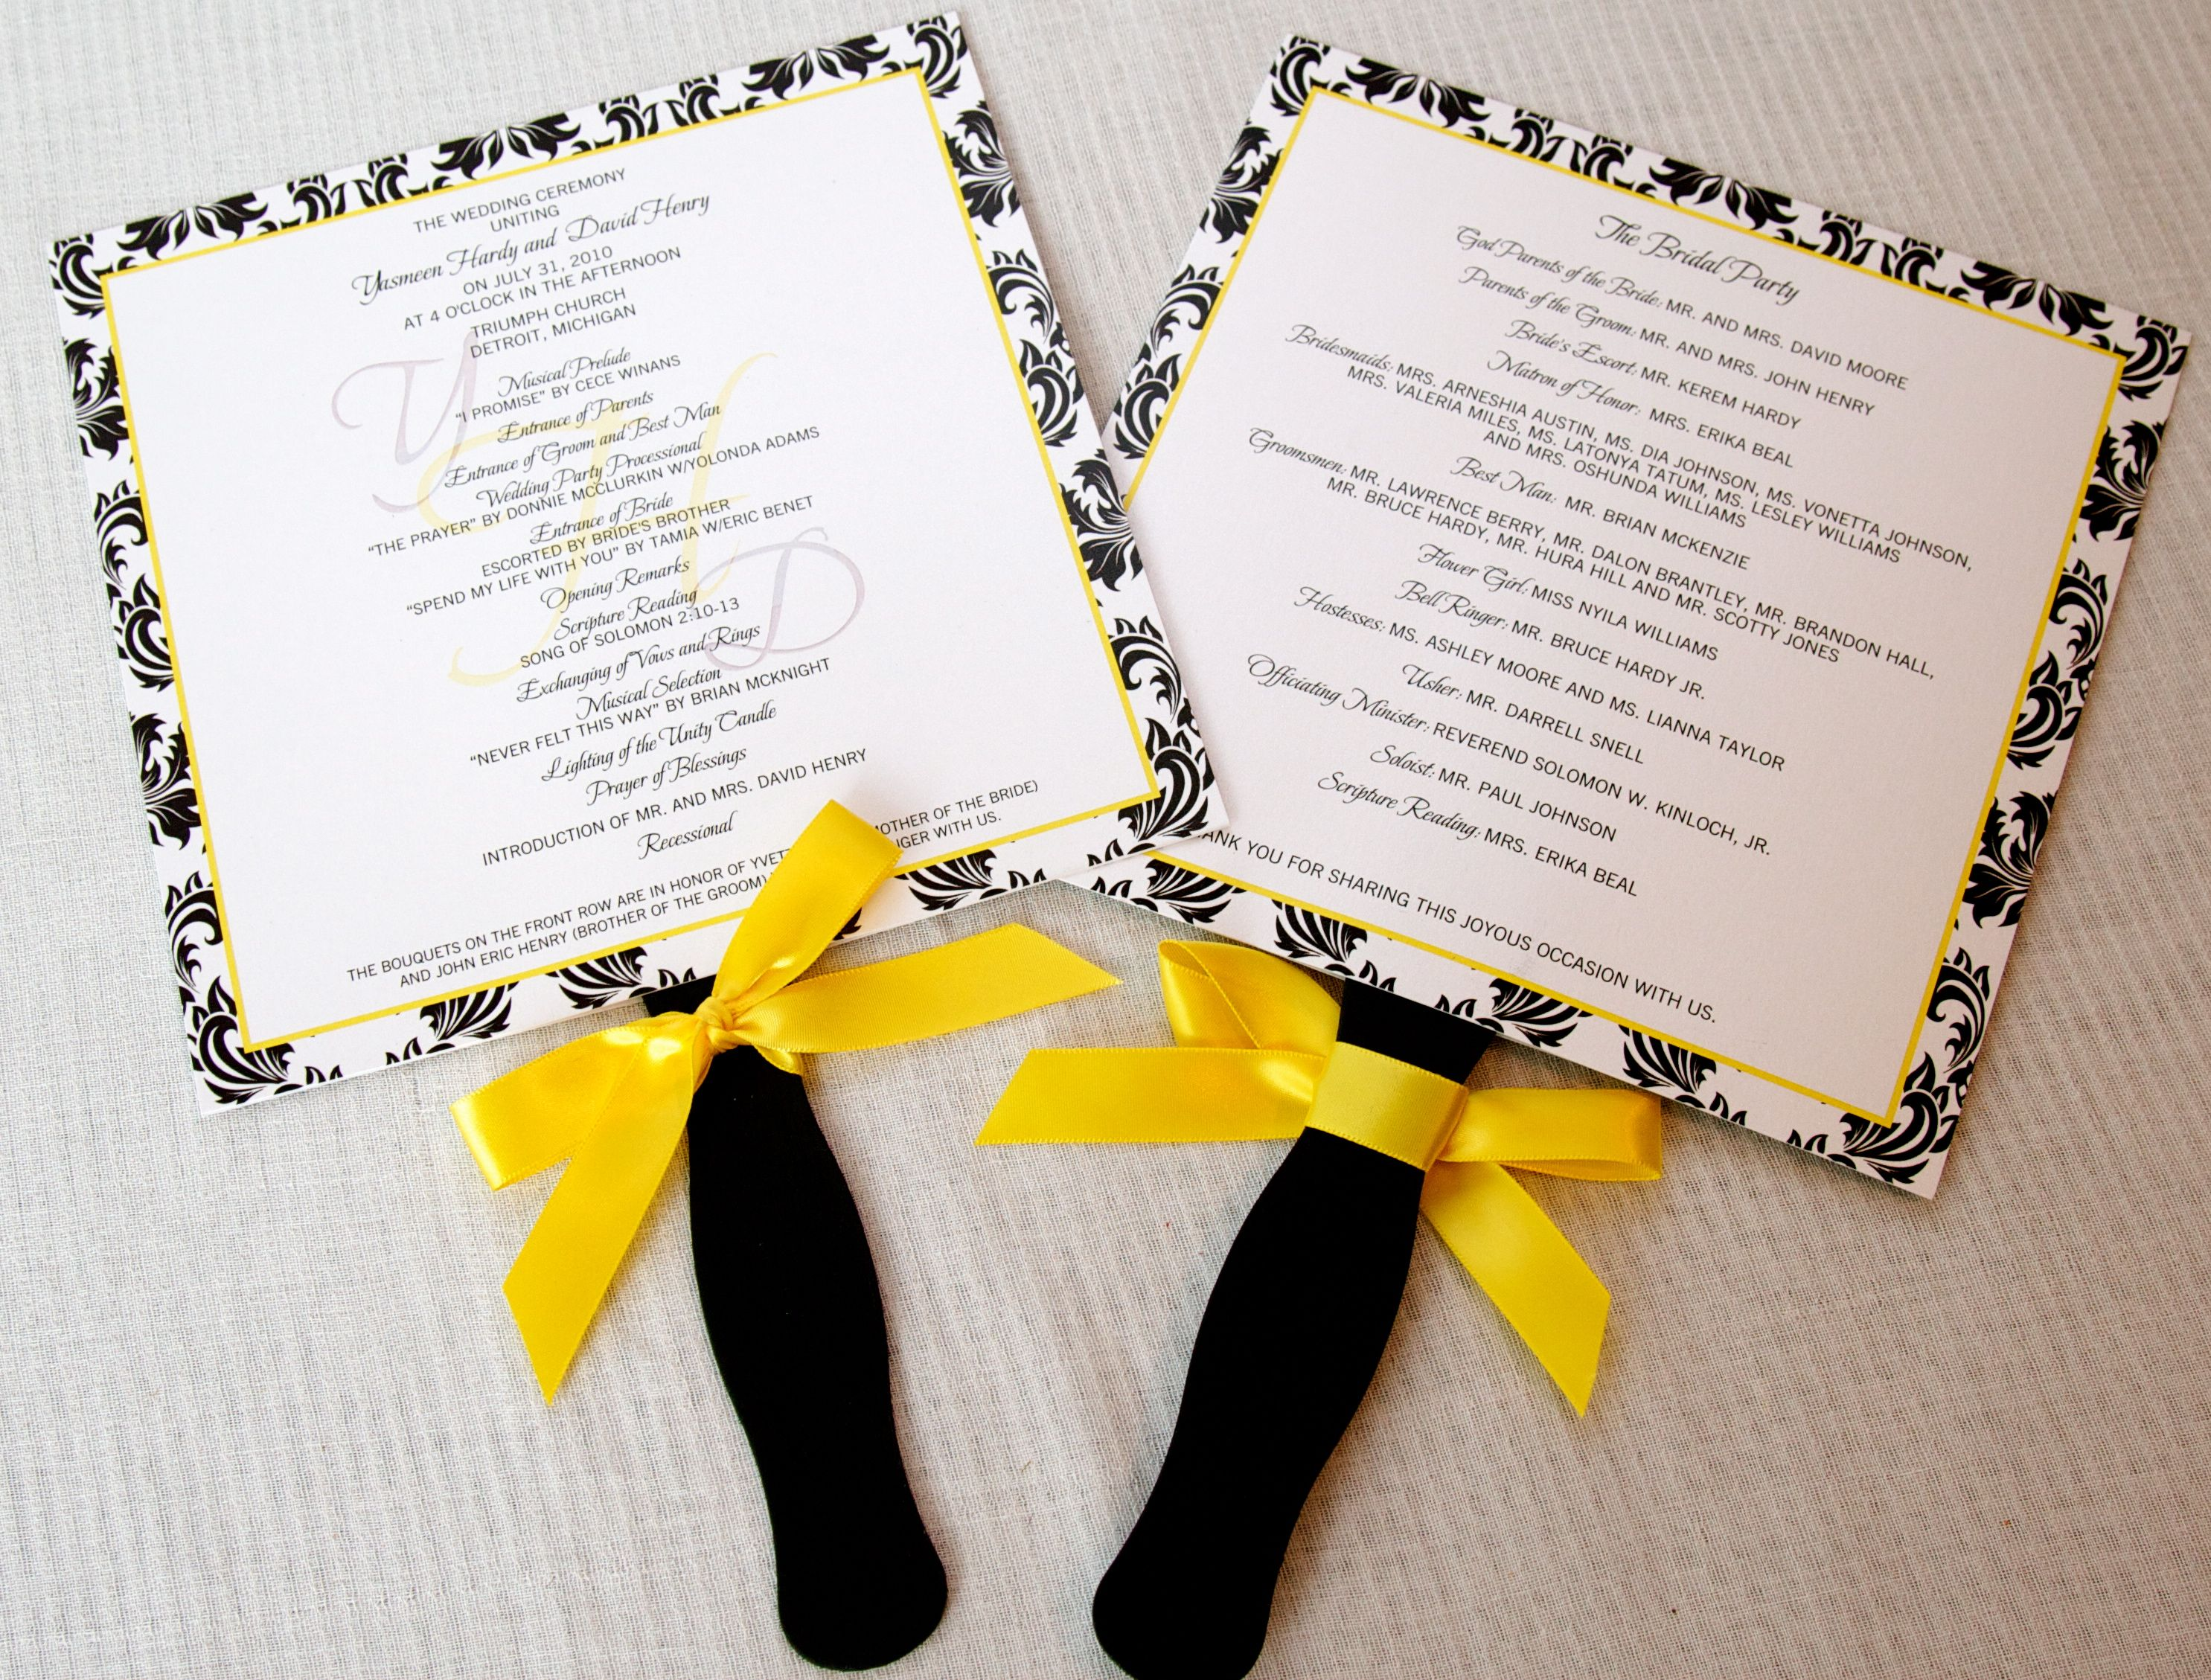 black and white wedding cards pinterest%0A wwddong invitation yellow   Wedding Invitations   Black  White  u     Yellow  Damask Inspired    LEPENN